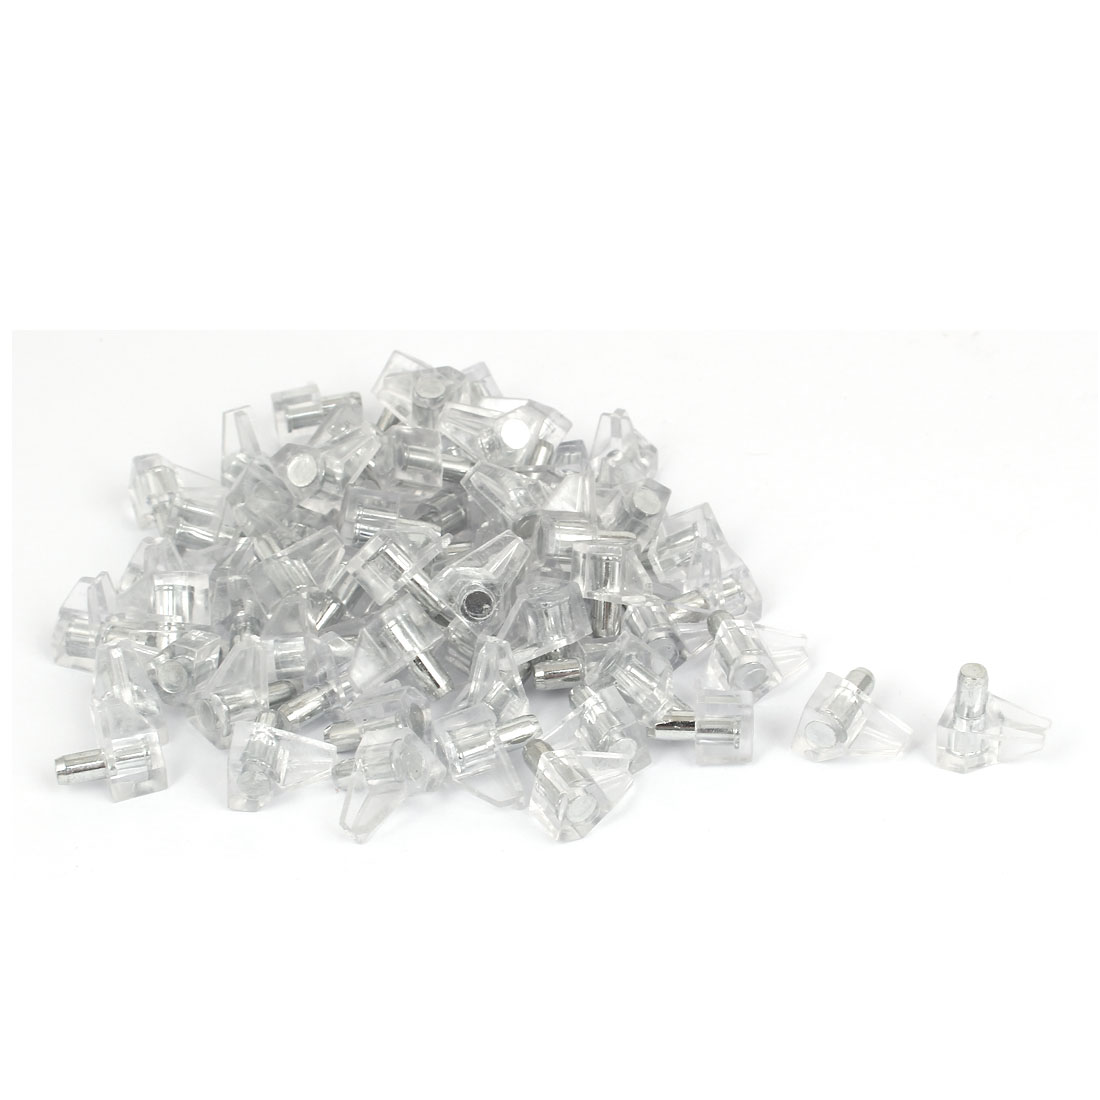 5mm Dia Metal Peg Pin Clear Plastic Shelf Glass Support Studs 70 Pcs